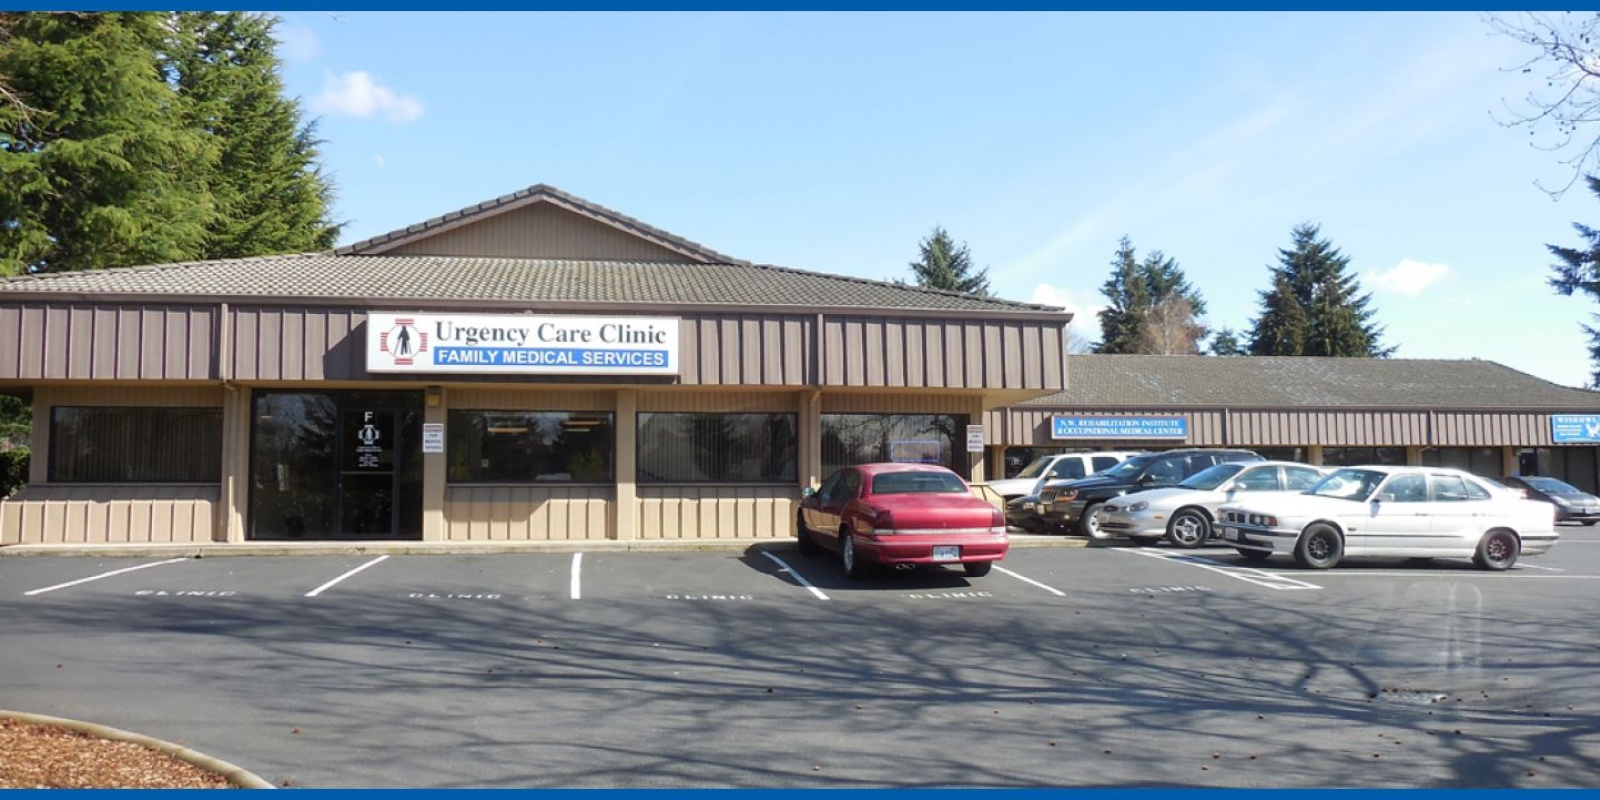 4421 NE St Johns Rd, Vancouver, WA, ,Office,For Lease,4421 NE St Johns Rd, Vancouver, WA,1336